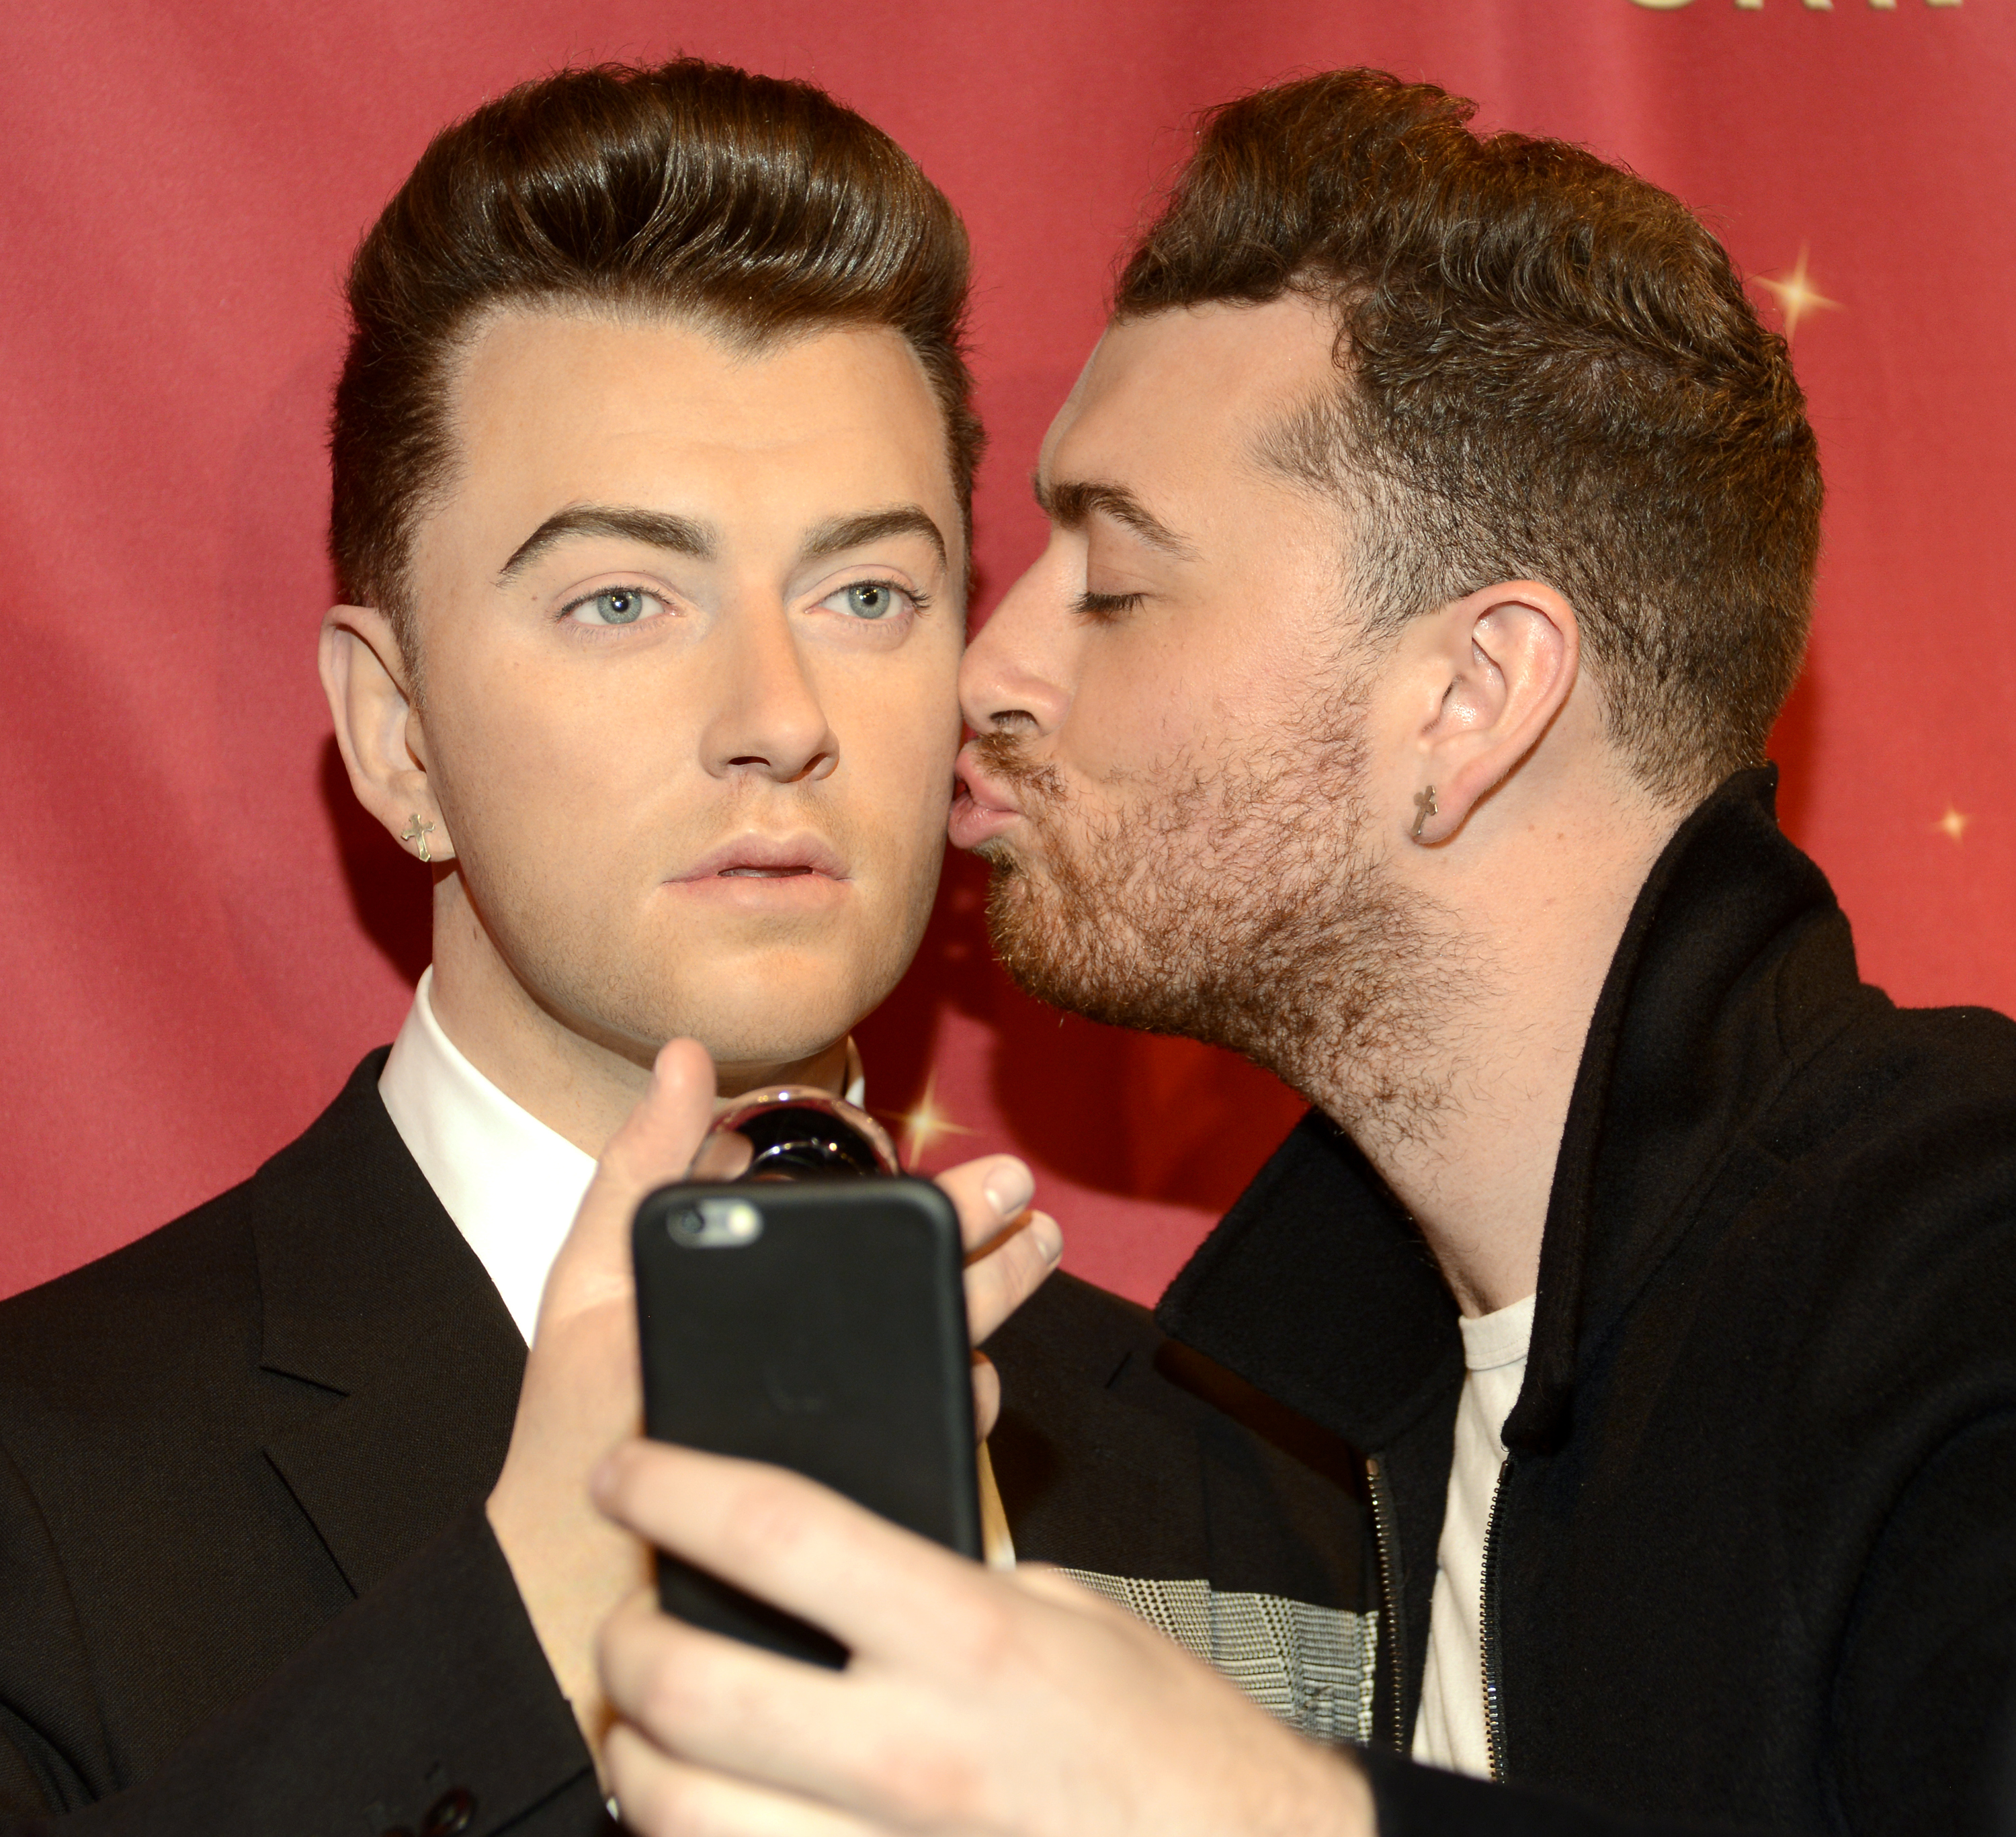 Sam Smith with is wax figurine at Madame Tussauds San Francisco on Aug.10, 2015 in San Francisco.